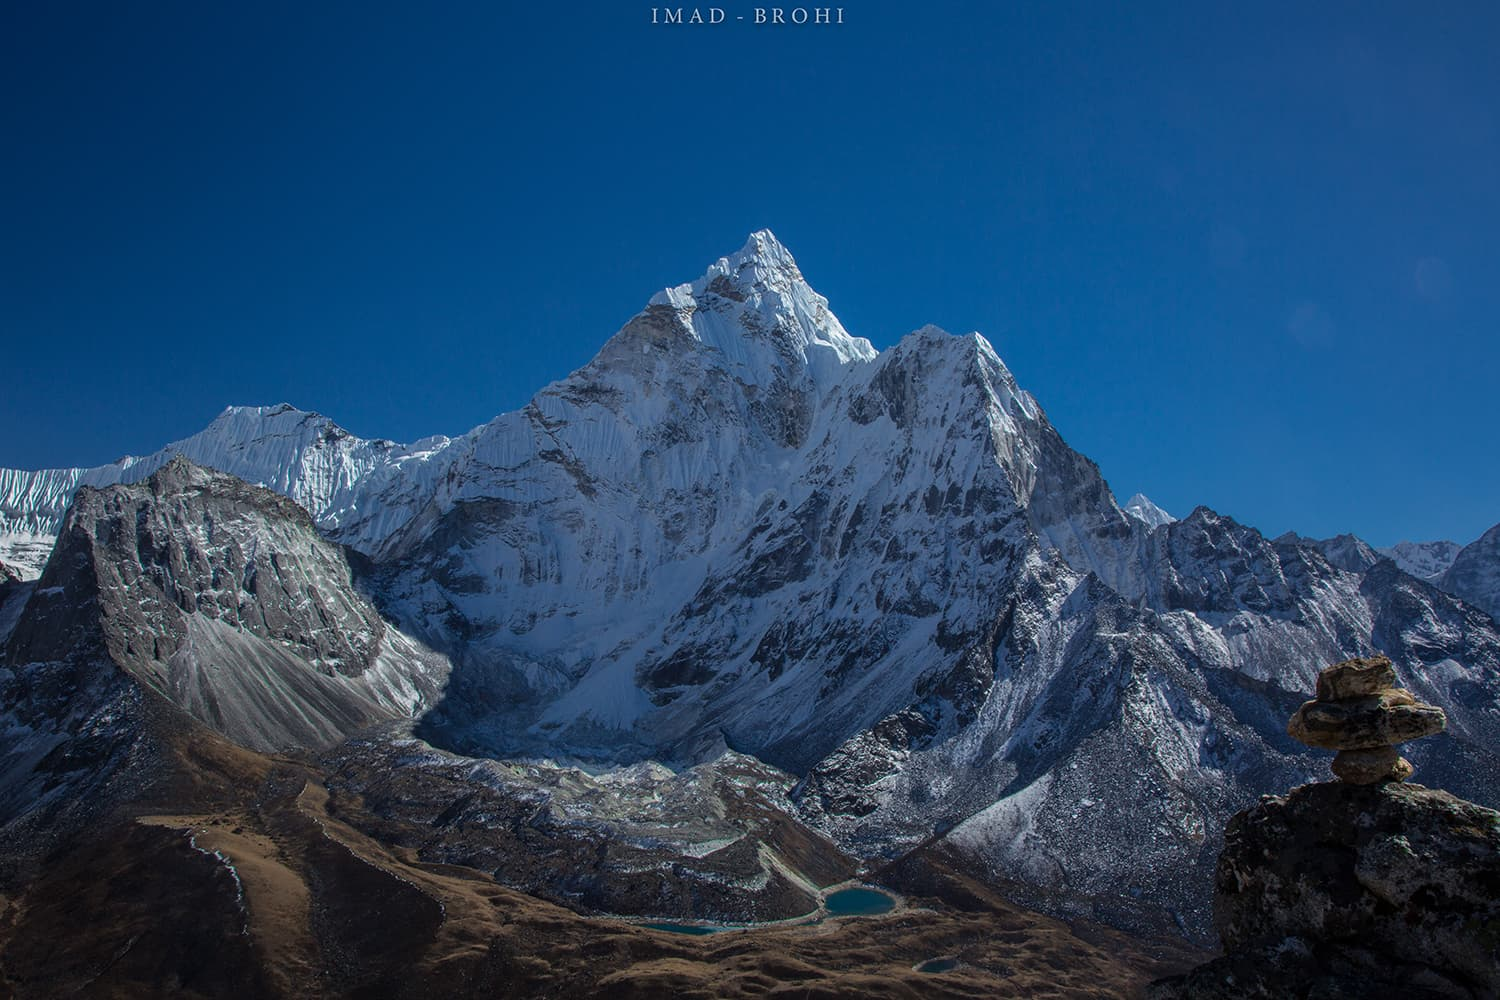 Day 7: Ama Dablam's north face from the top of acclimatisation hike.